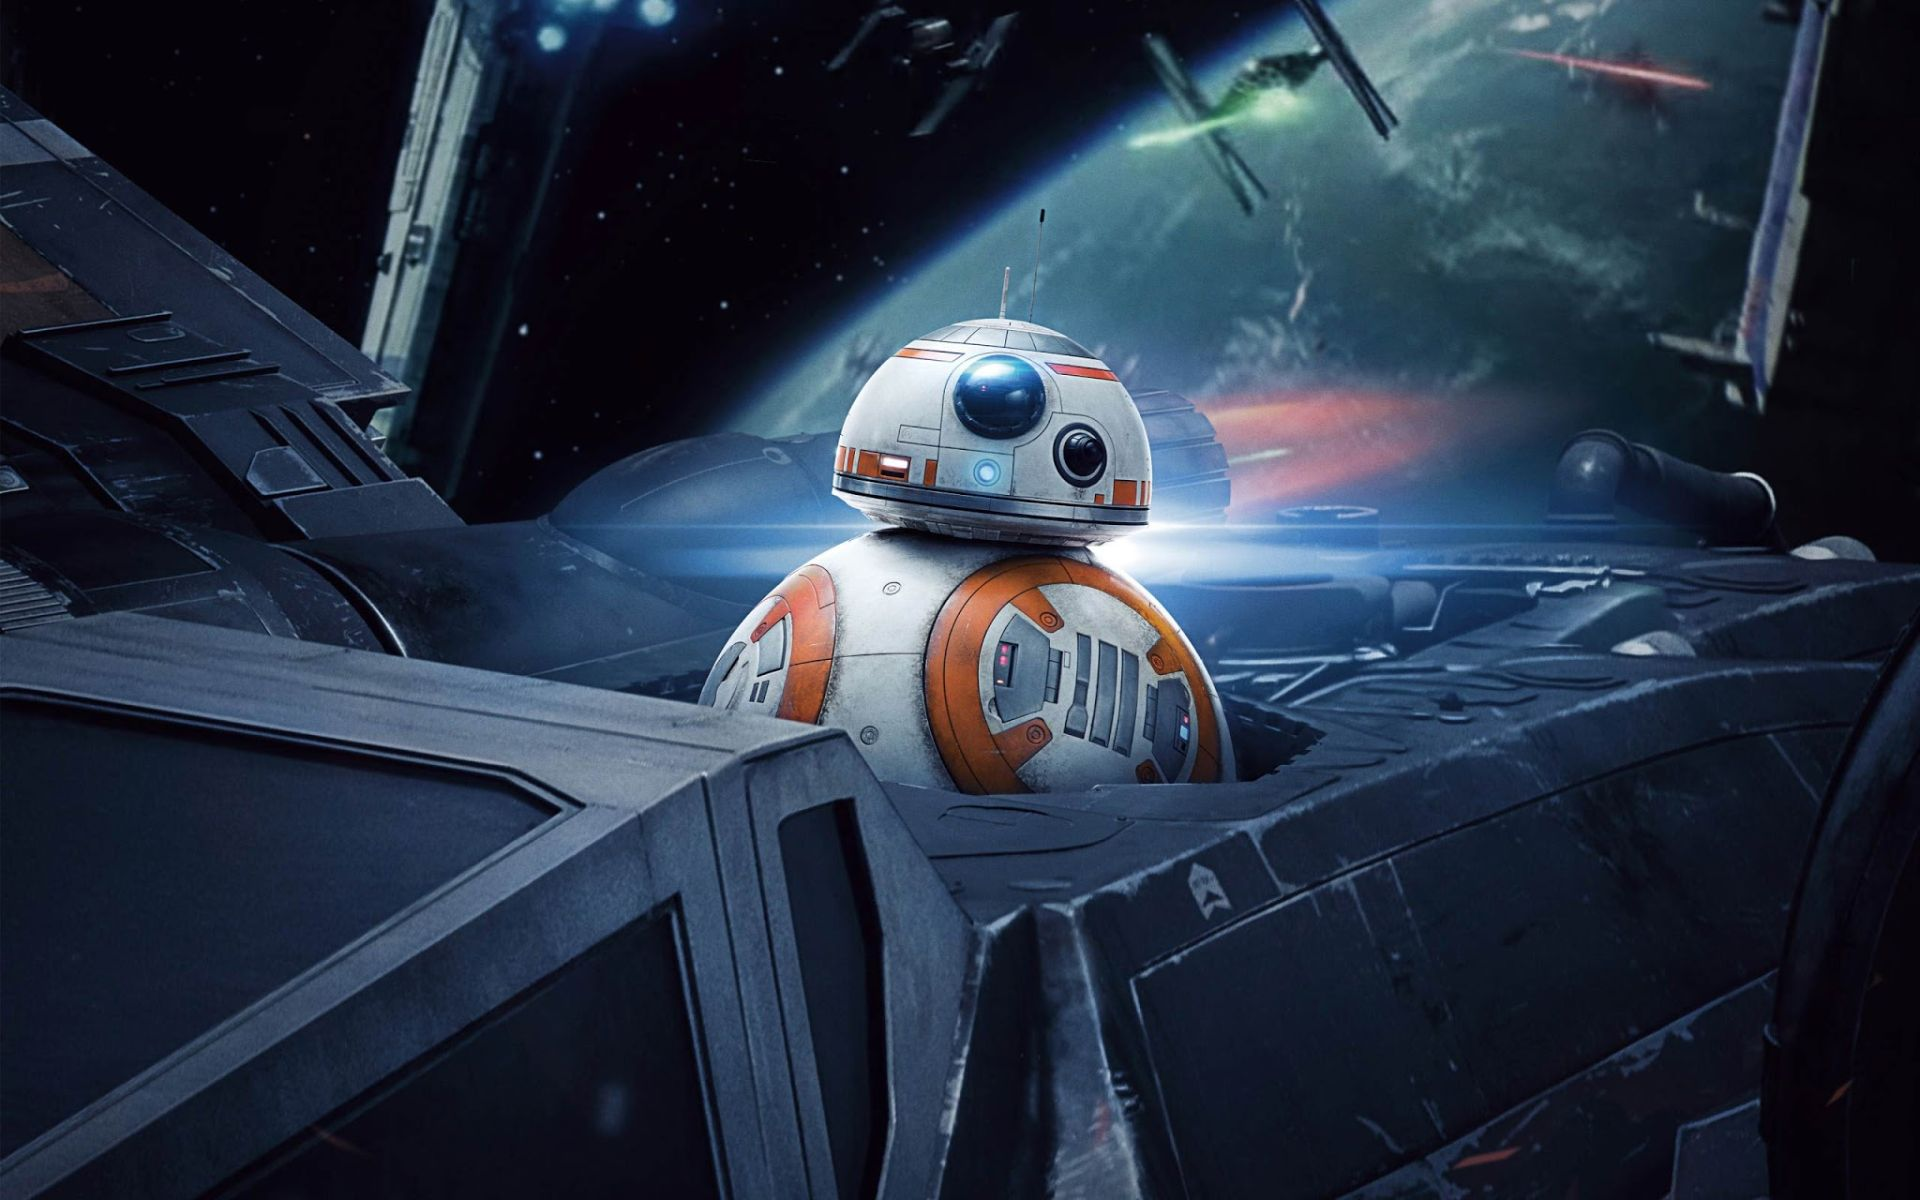 Star Wars Screensaver Free Wallpaper and Background